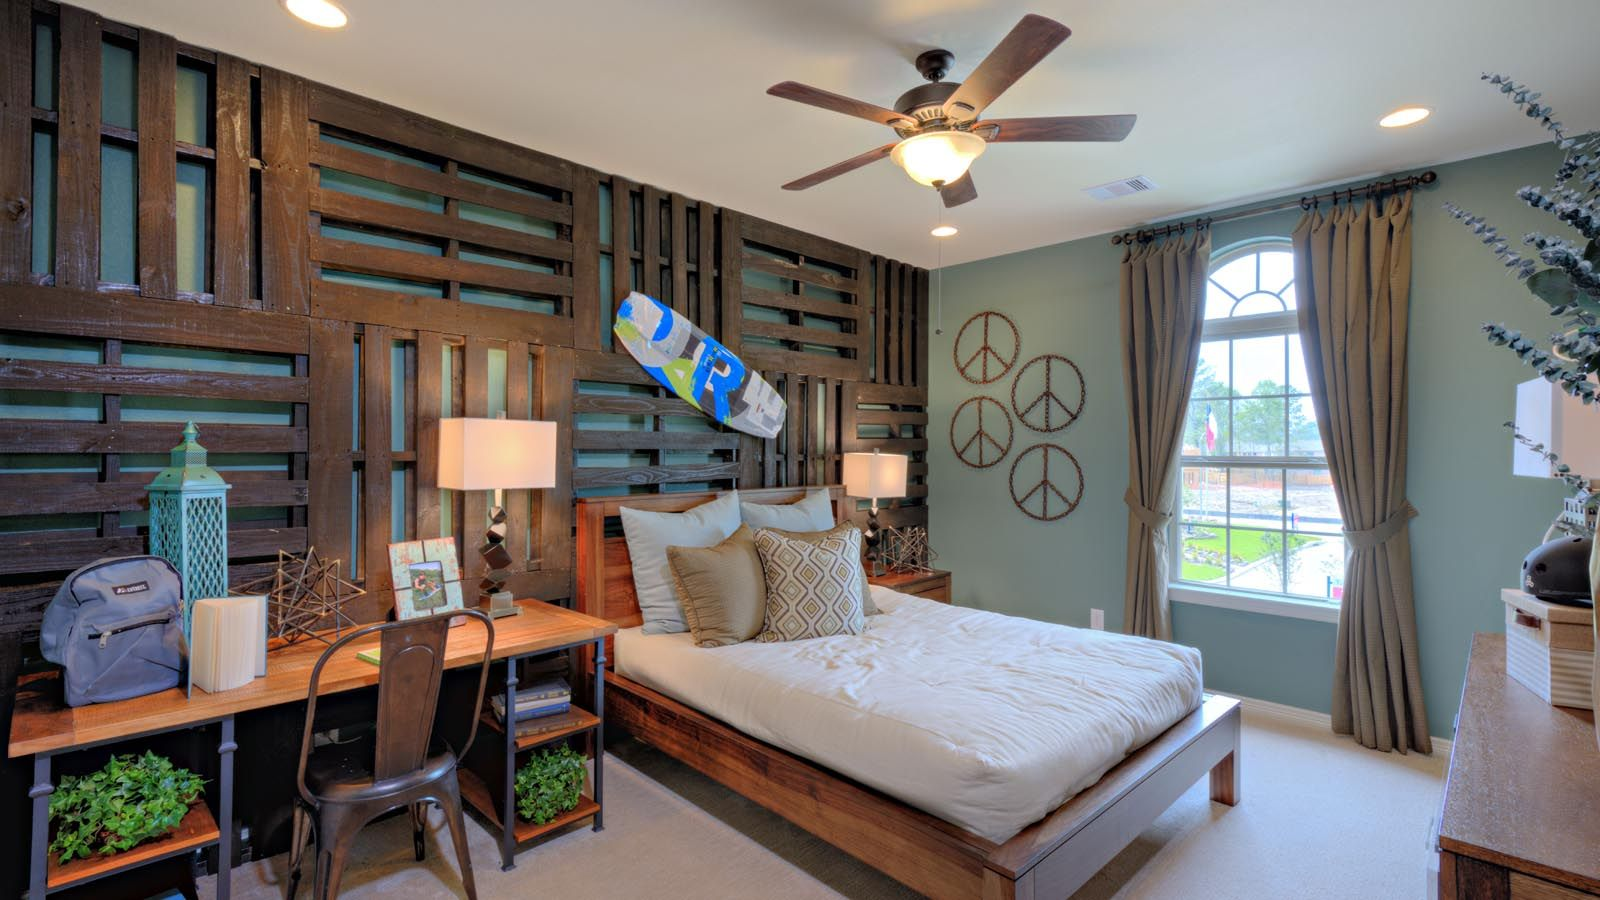 Bedroom featured in the Milano Plan By Taylor Morrison in Houston, TX